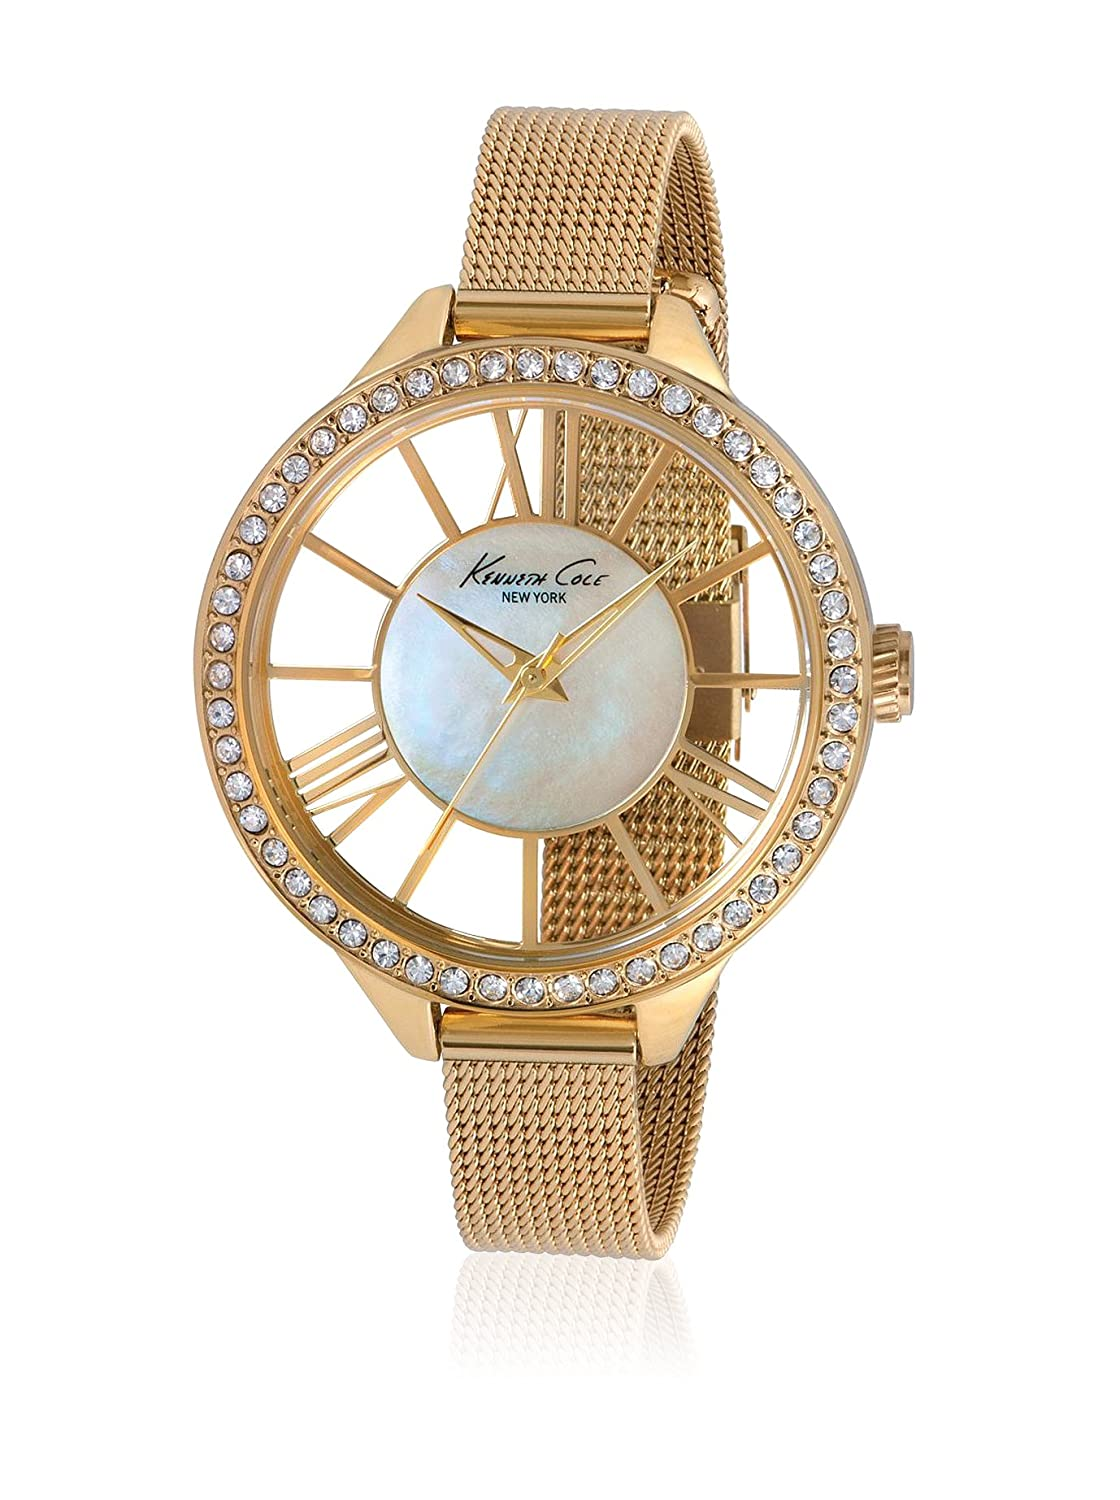 d1dfc38a0ec Kenneth cole transparency womens watches ikc watches jpg 1120x1500 Kenneth  cole ladies watch